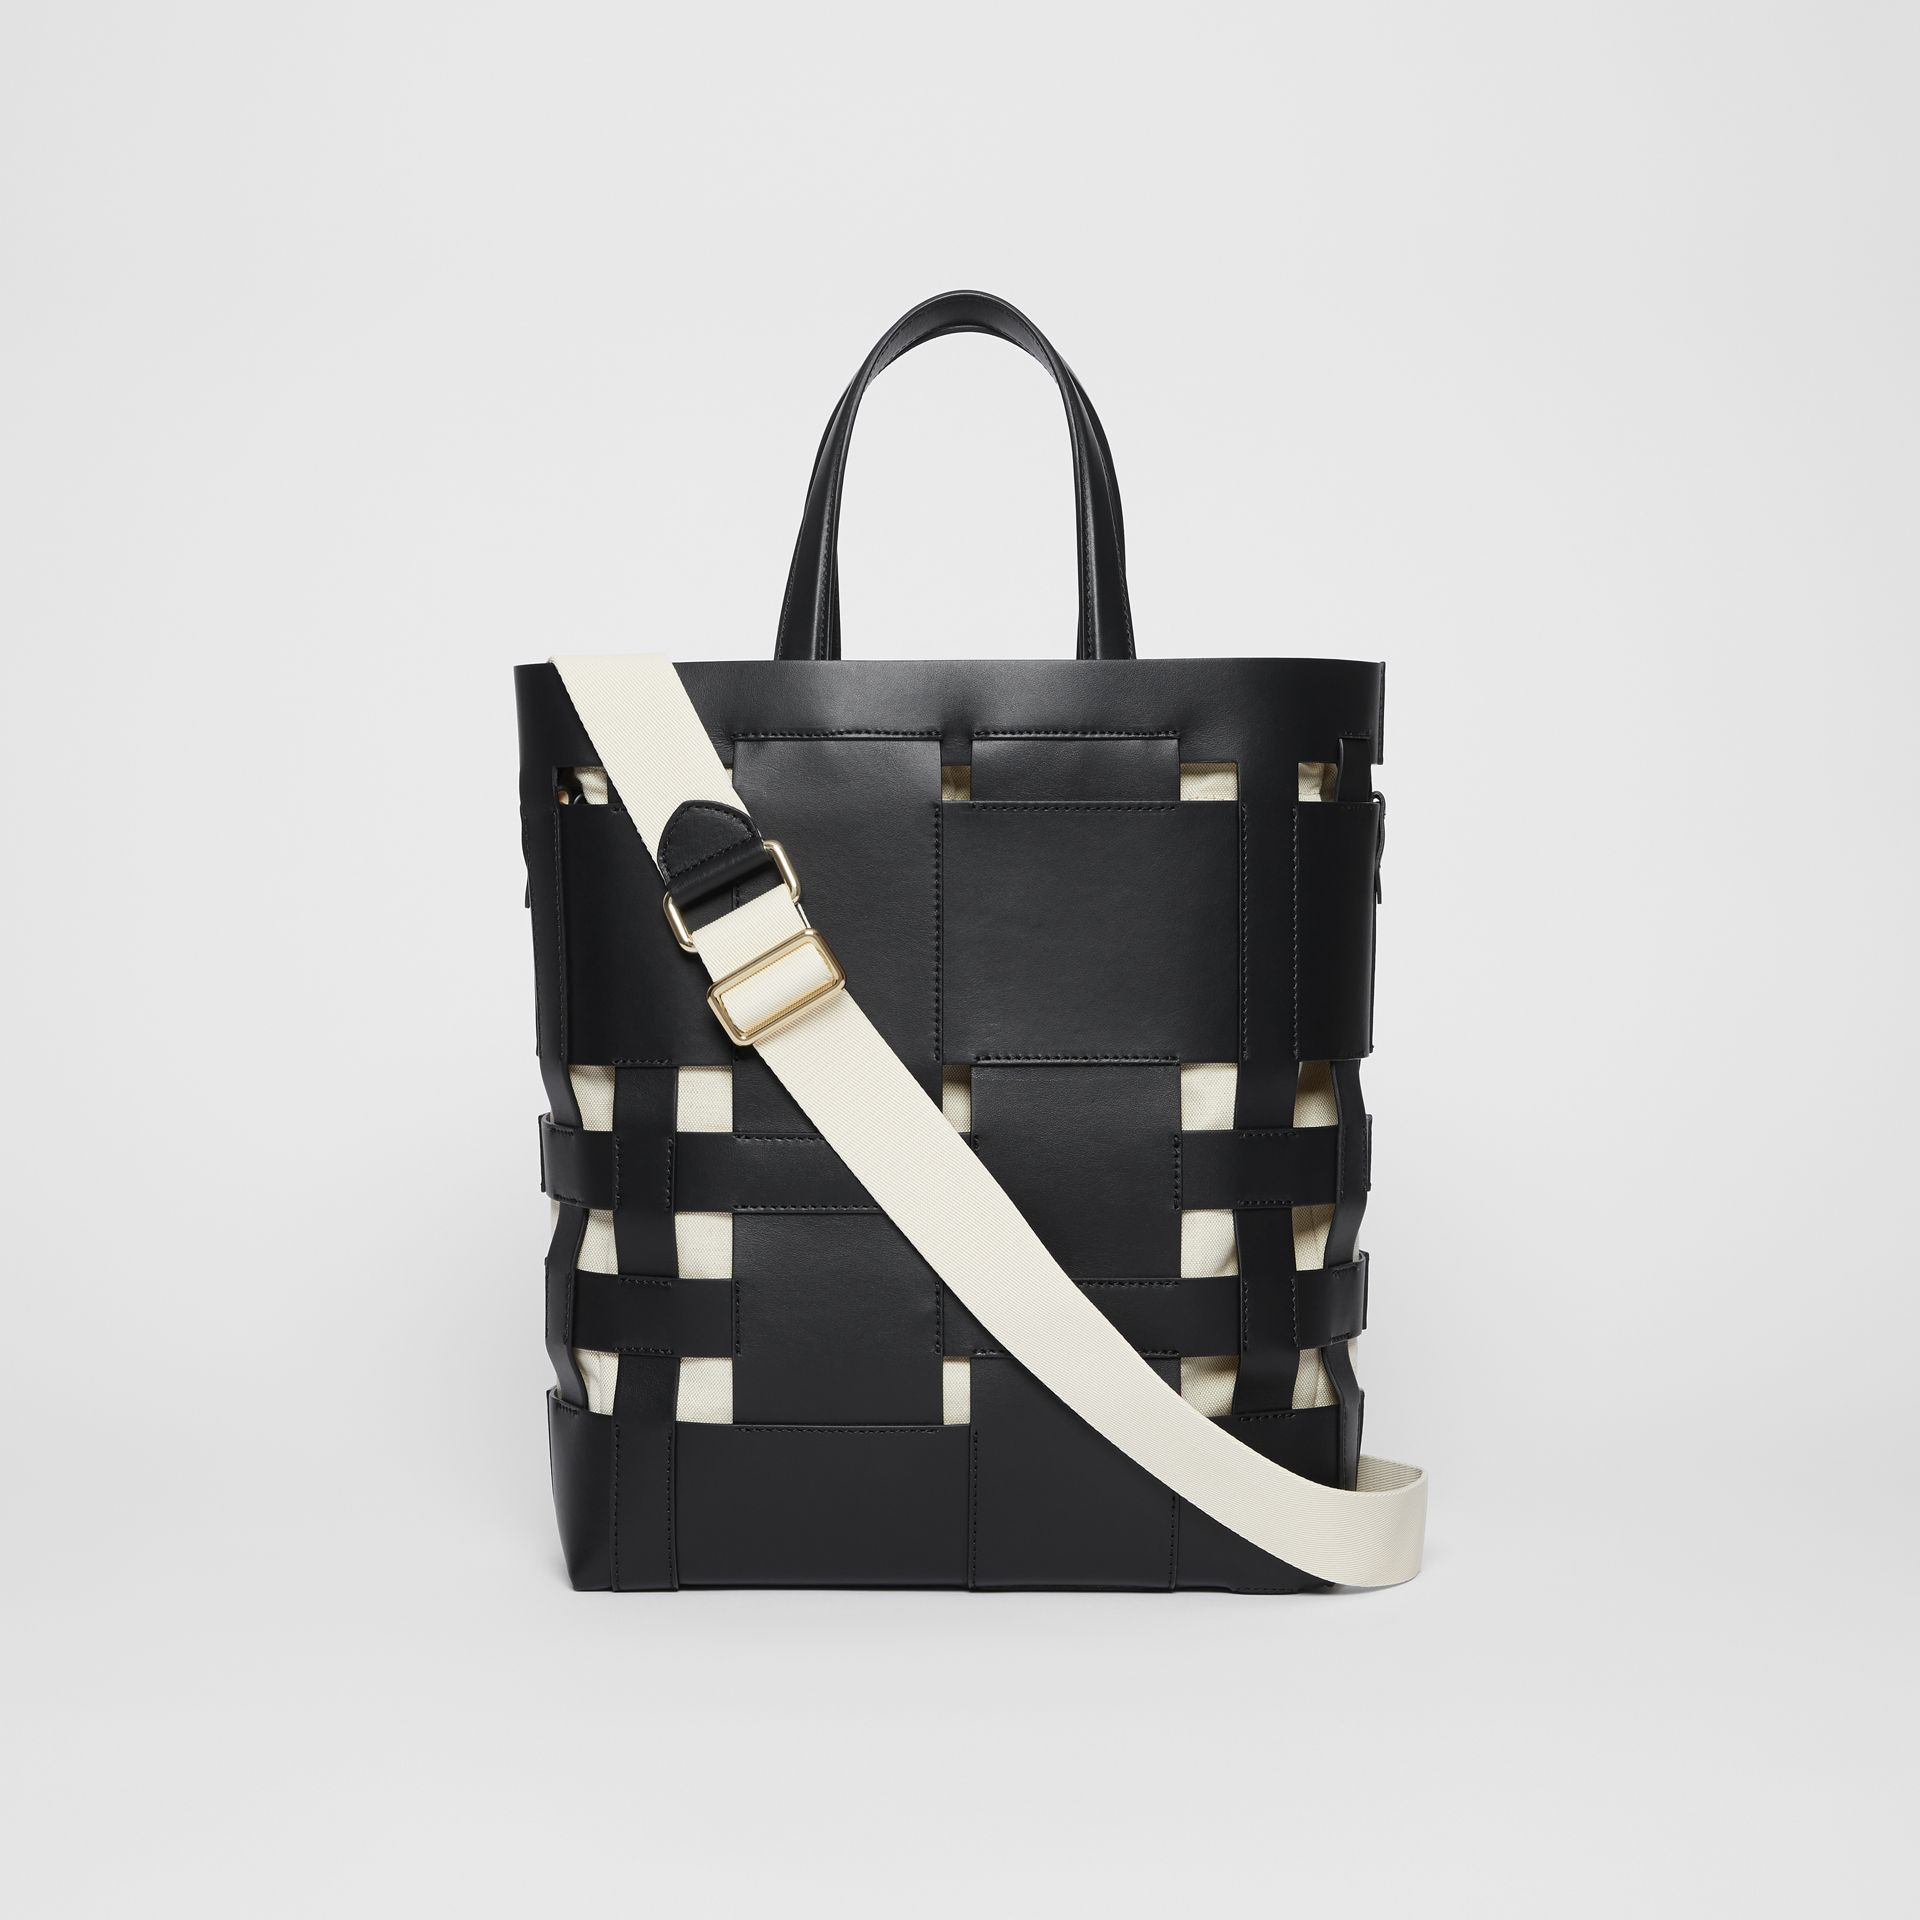 Medium Leather Foster Tote in Black - Women | Burberry Canada - gallery image 7